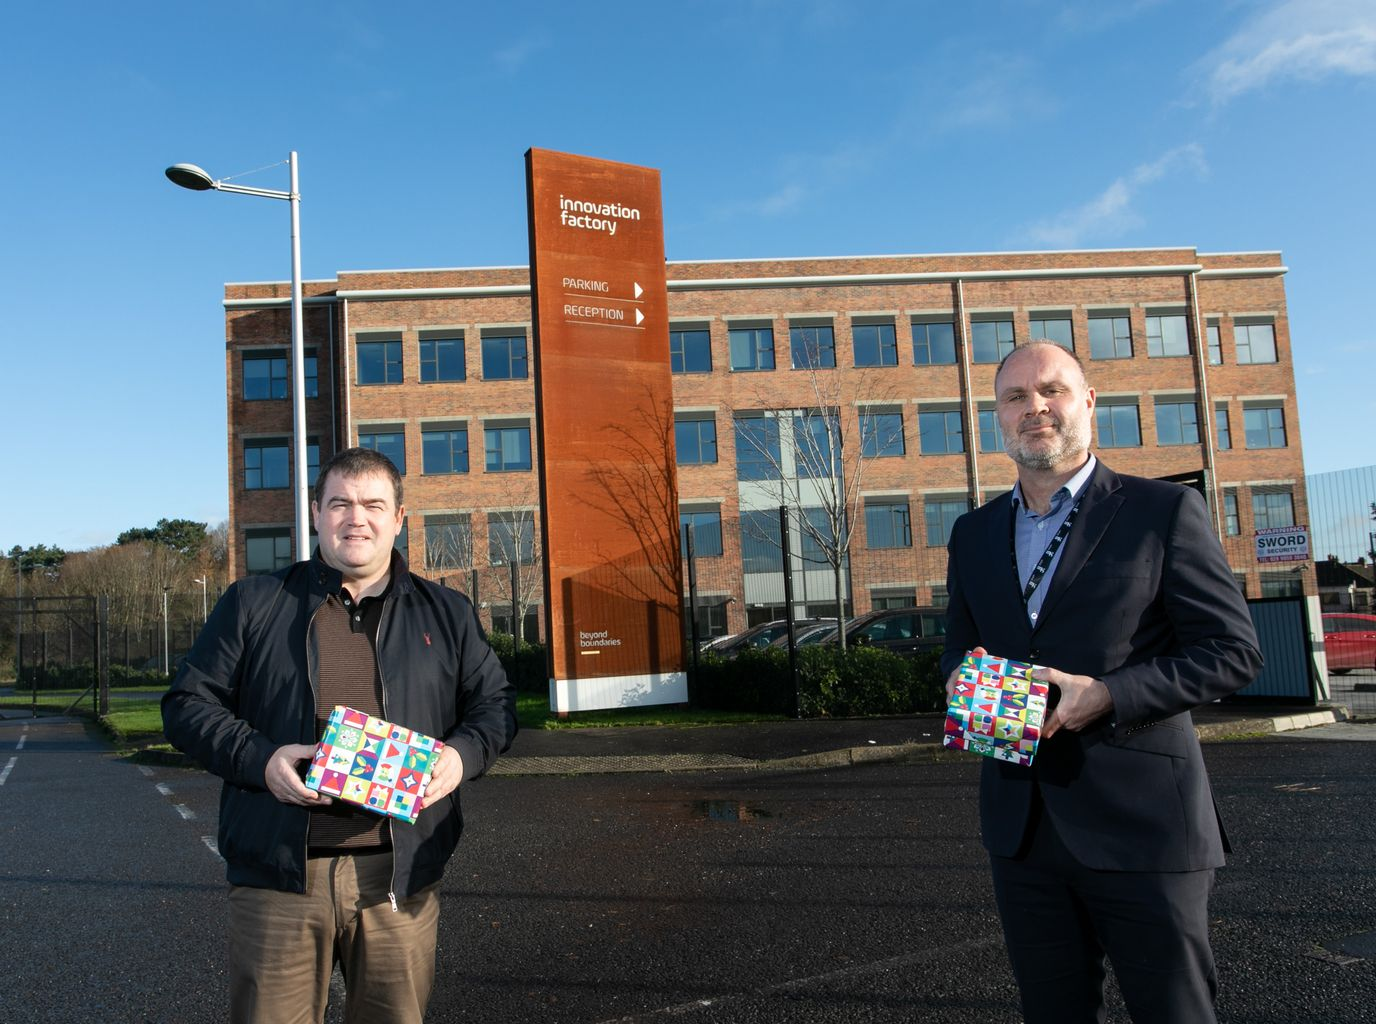 West Belfast cross-community appeal launched to help families this Chrsitmas